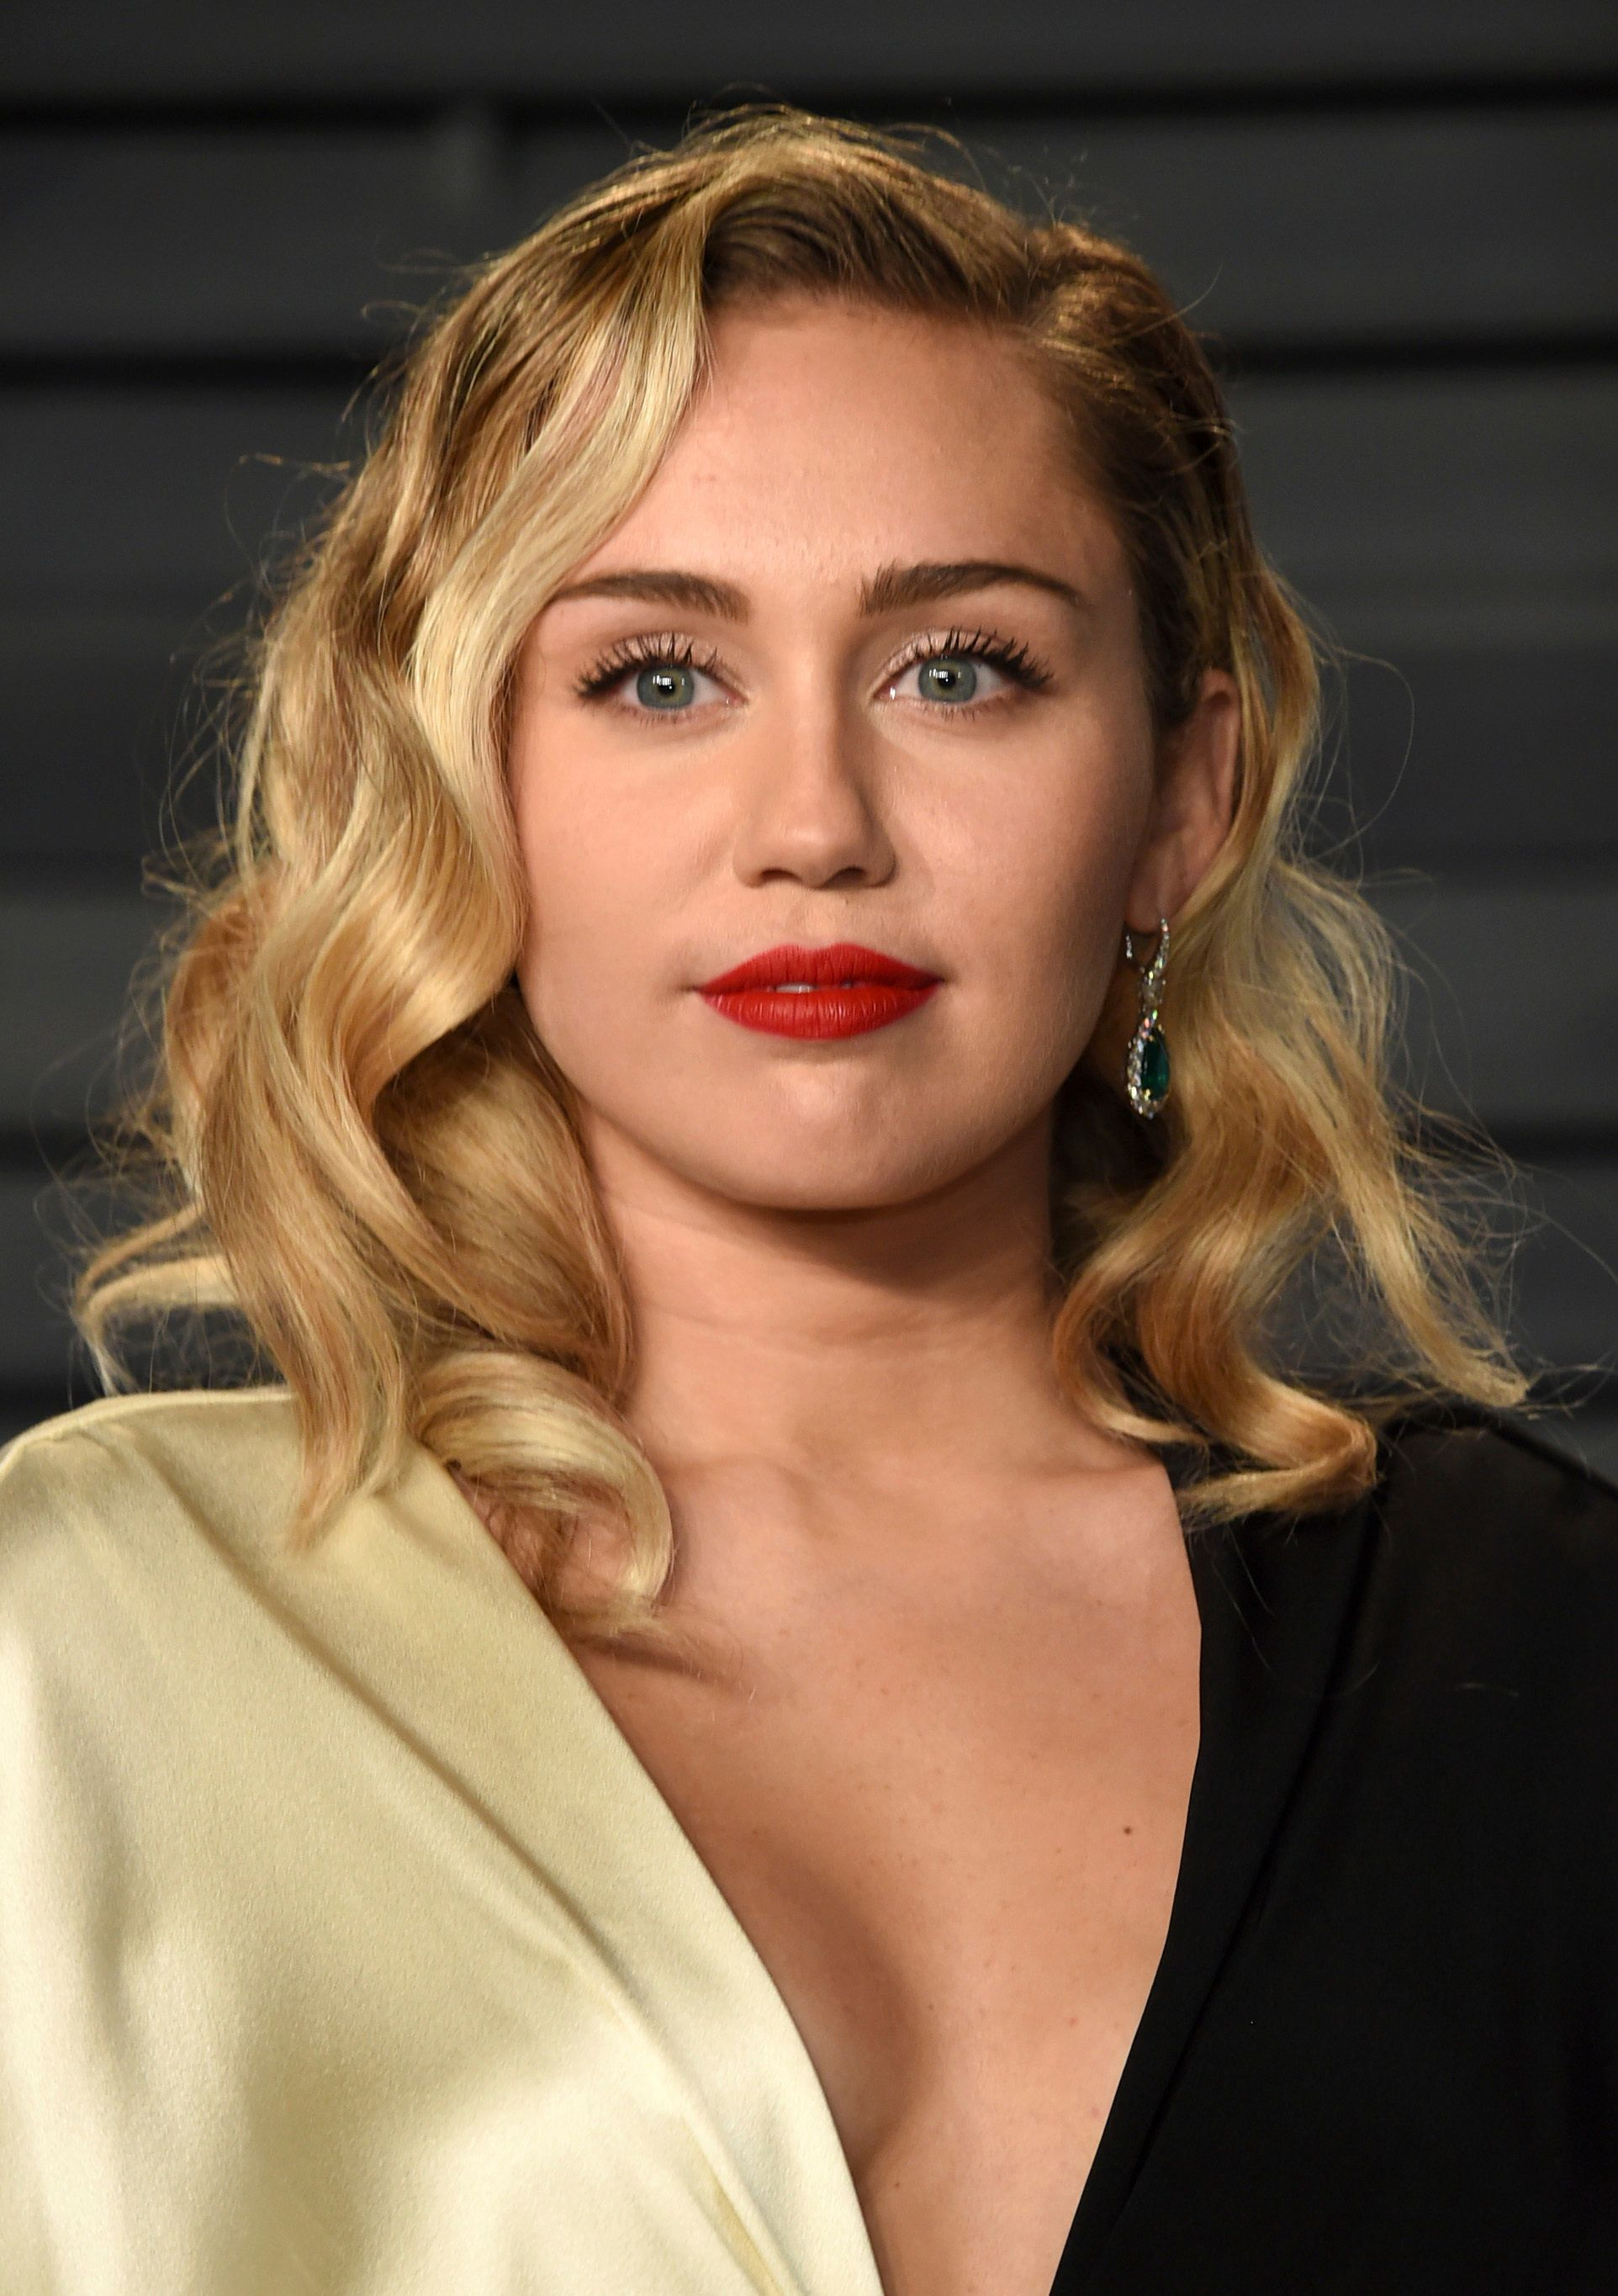 Miley Cyrus arrives at the Vanity Fair Oscar Party on Sunday, March 4, 2018, in Beverly Hills, Calif. (Photo by Evan Agostini/Invision/AP)